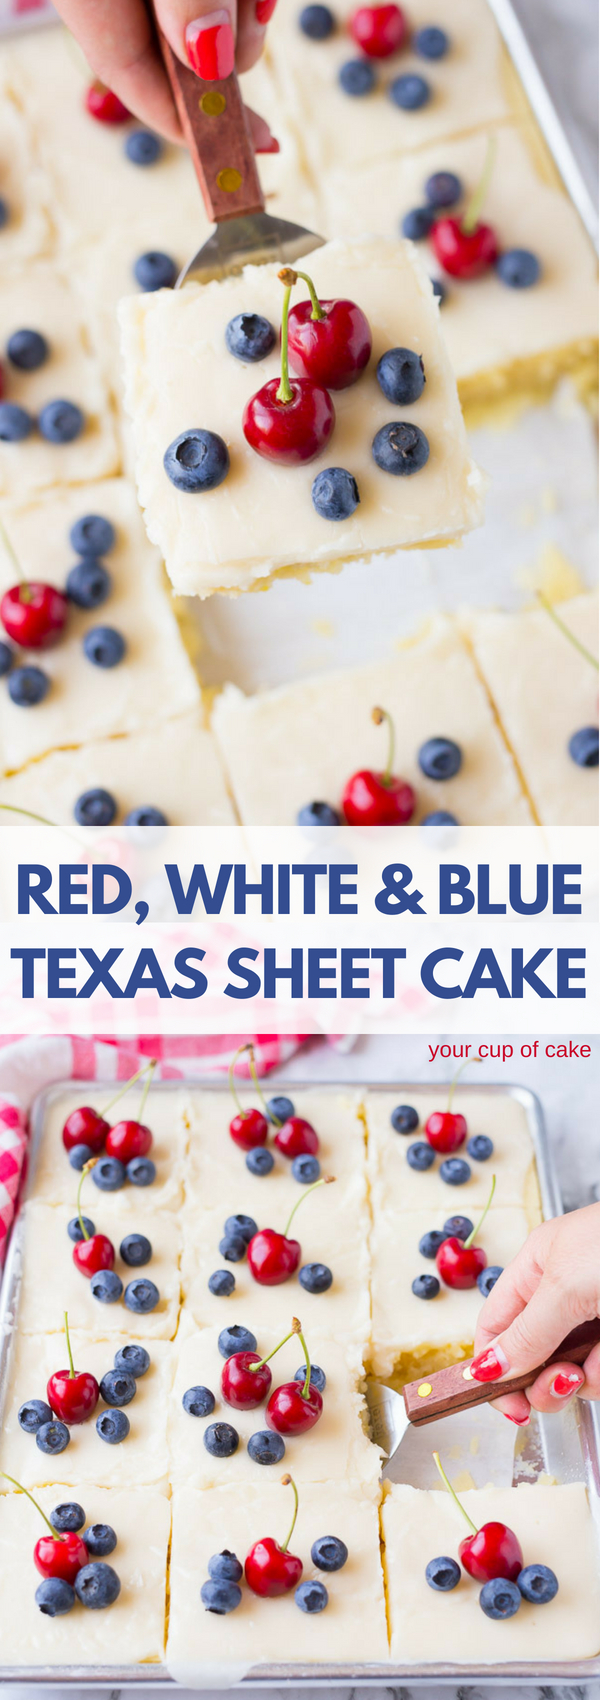 Red, White & Blue Lemon Texas Sheet Cake for the 4th of July!